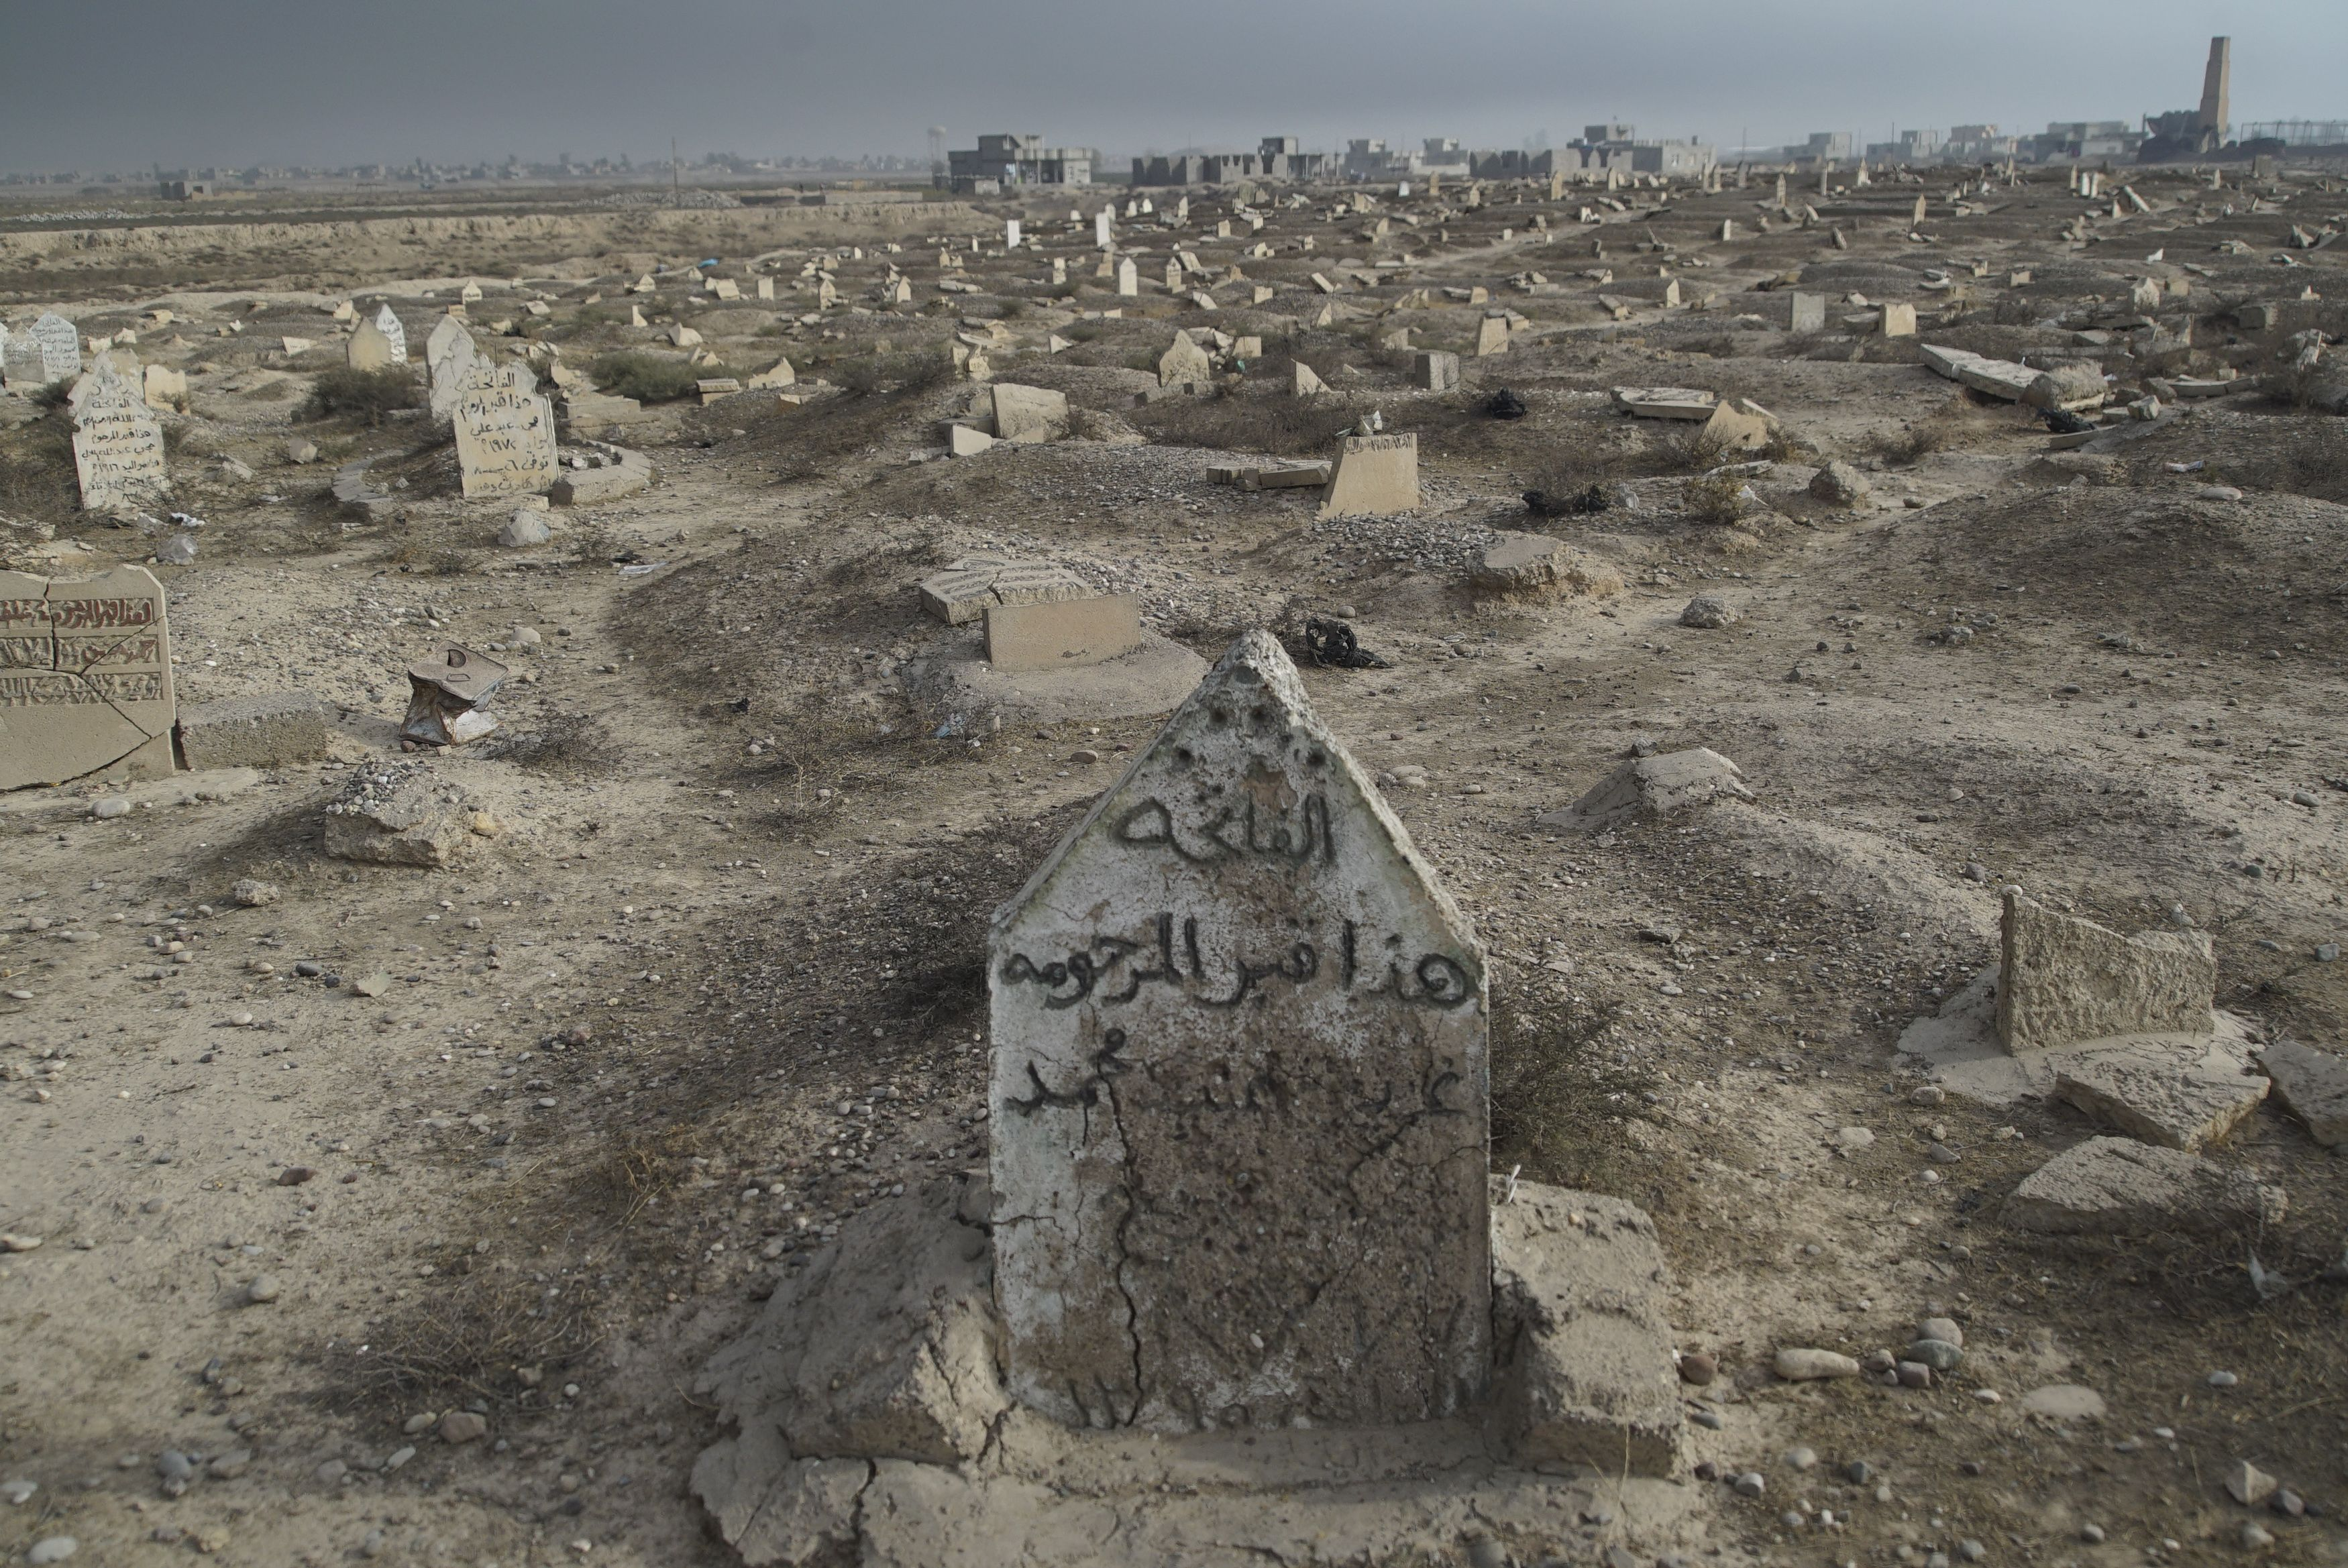 Cemetery destroyed by ISIS in Qayyarah town. Image courtesy of Wikimedia Commons. Iraq, 2016.